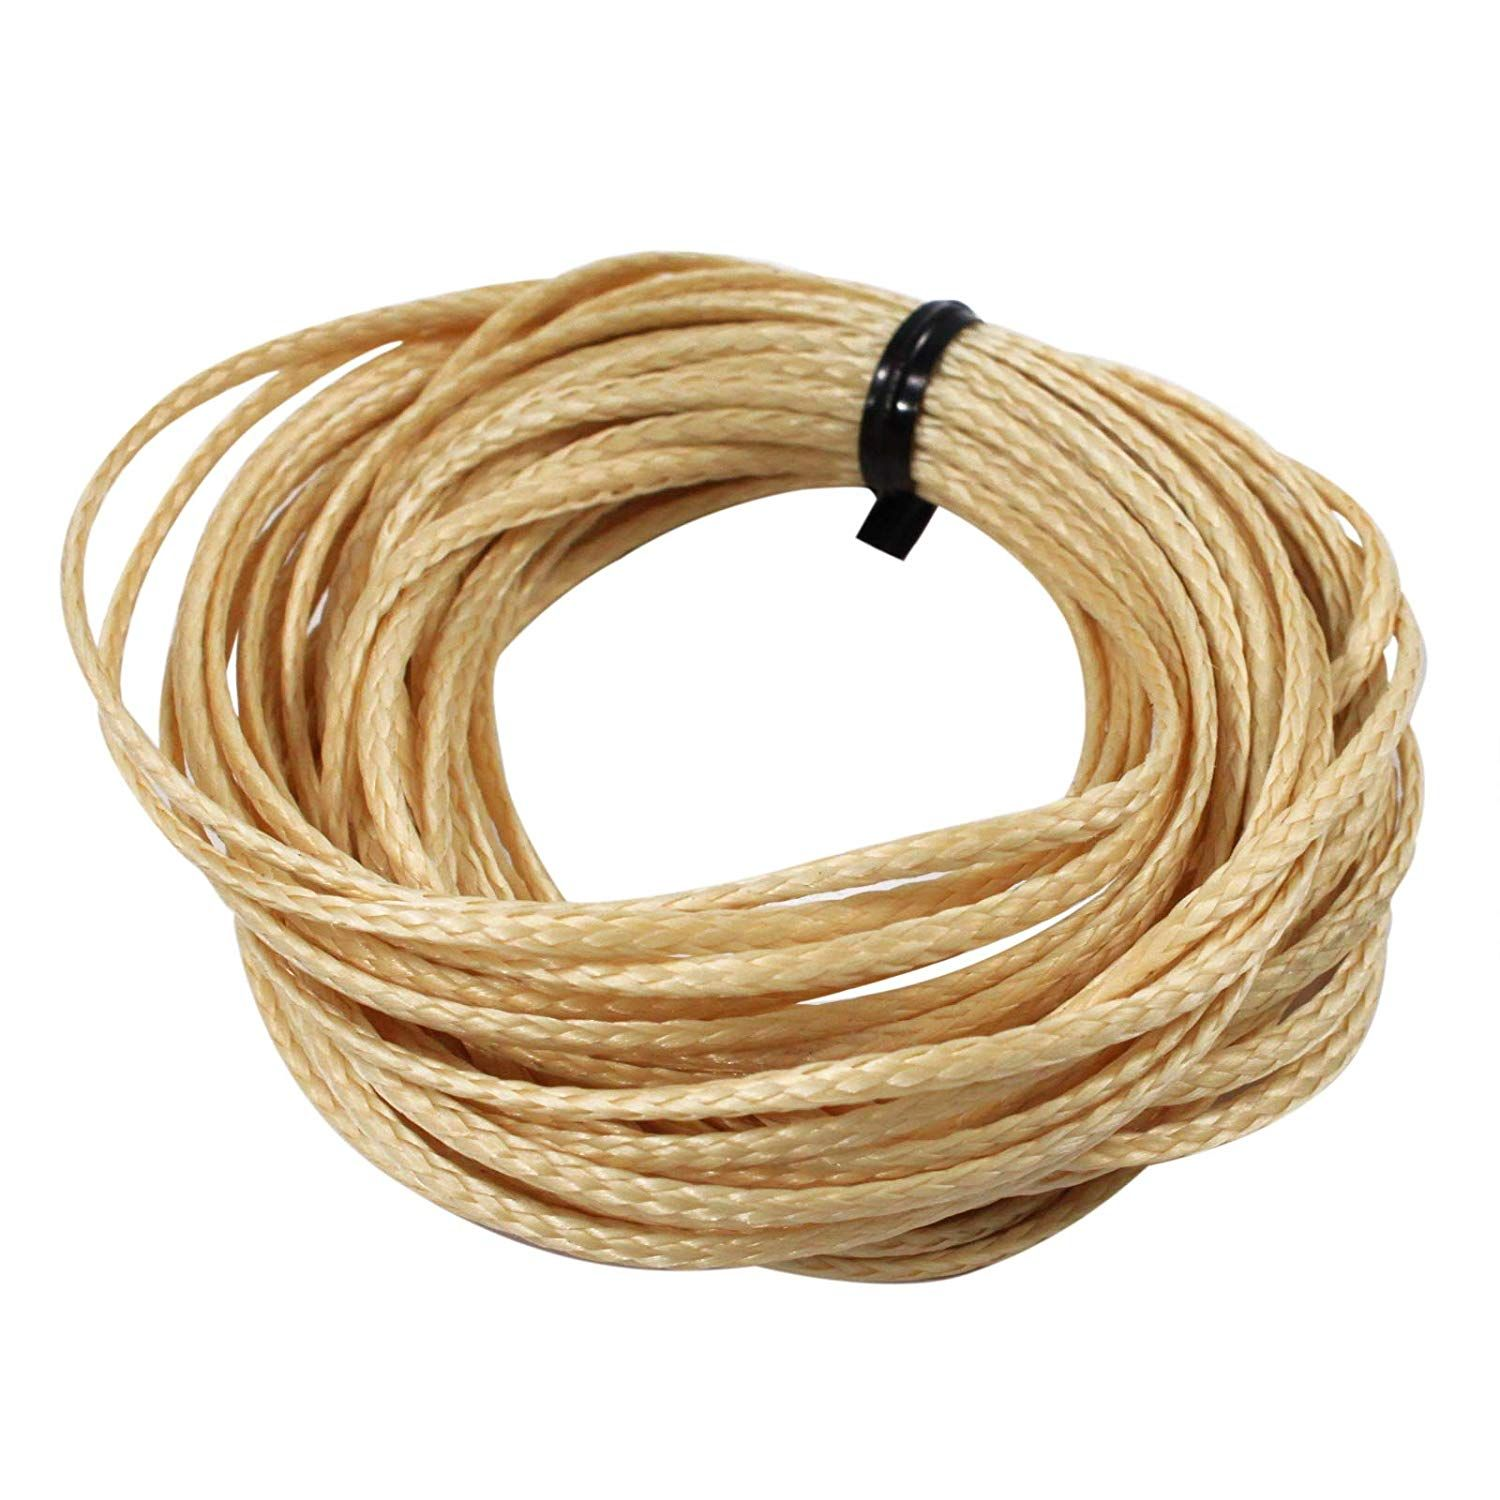 Asr Outdoor Technora Composite Survival Rope 1200lb Breaking Strength 25ft Tan See The Photo Link Even More Cool Things To Buy Climbing Rope Natural Braids